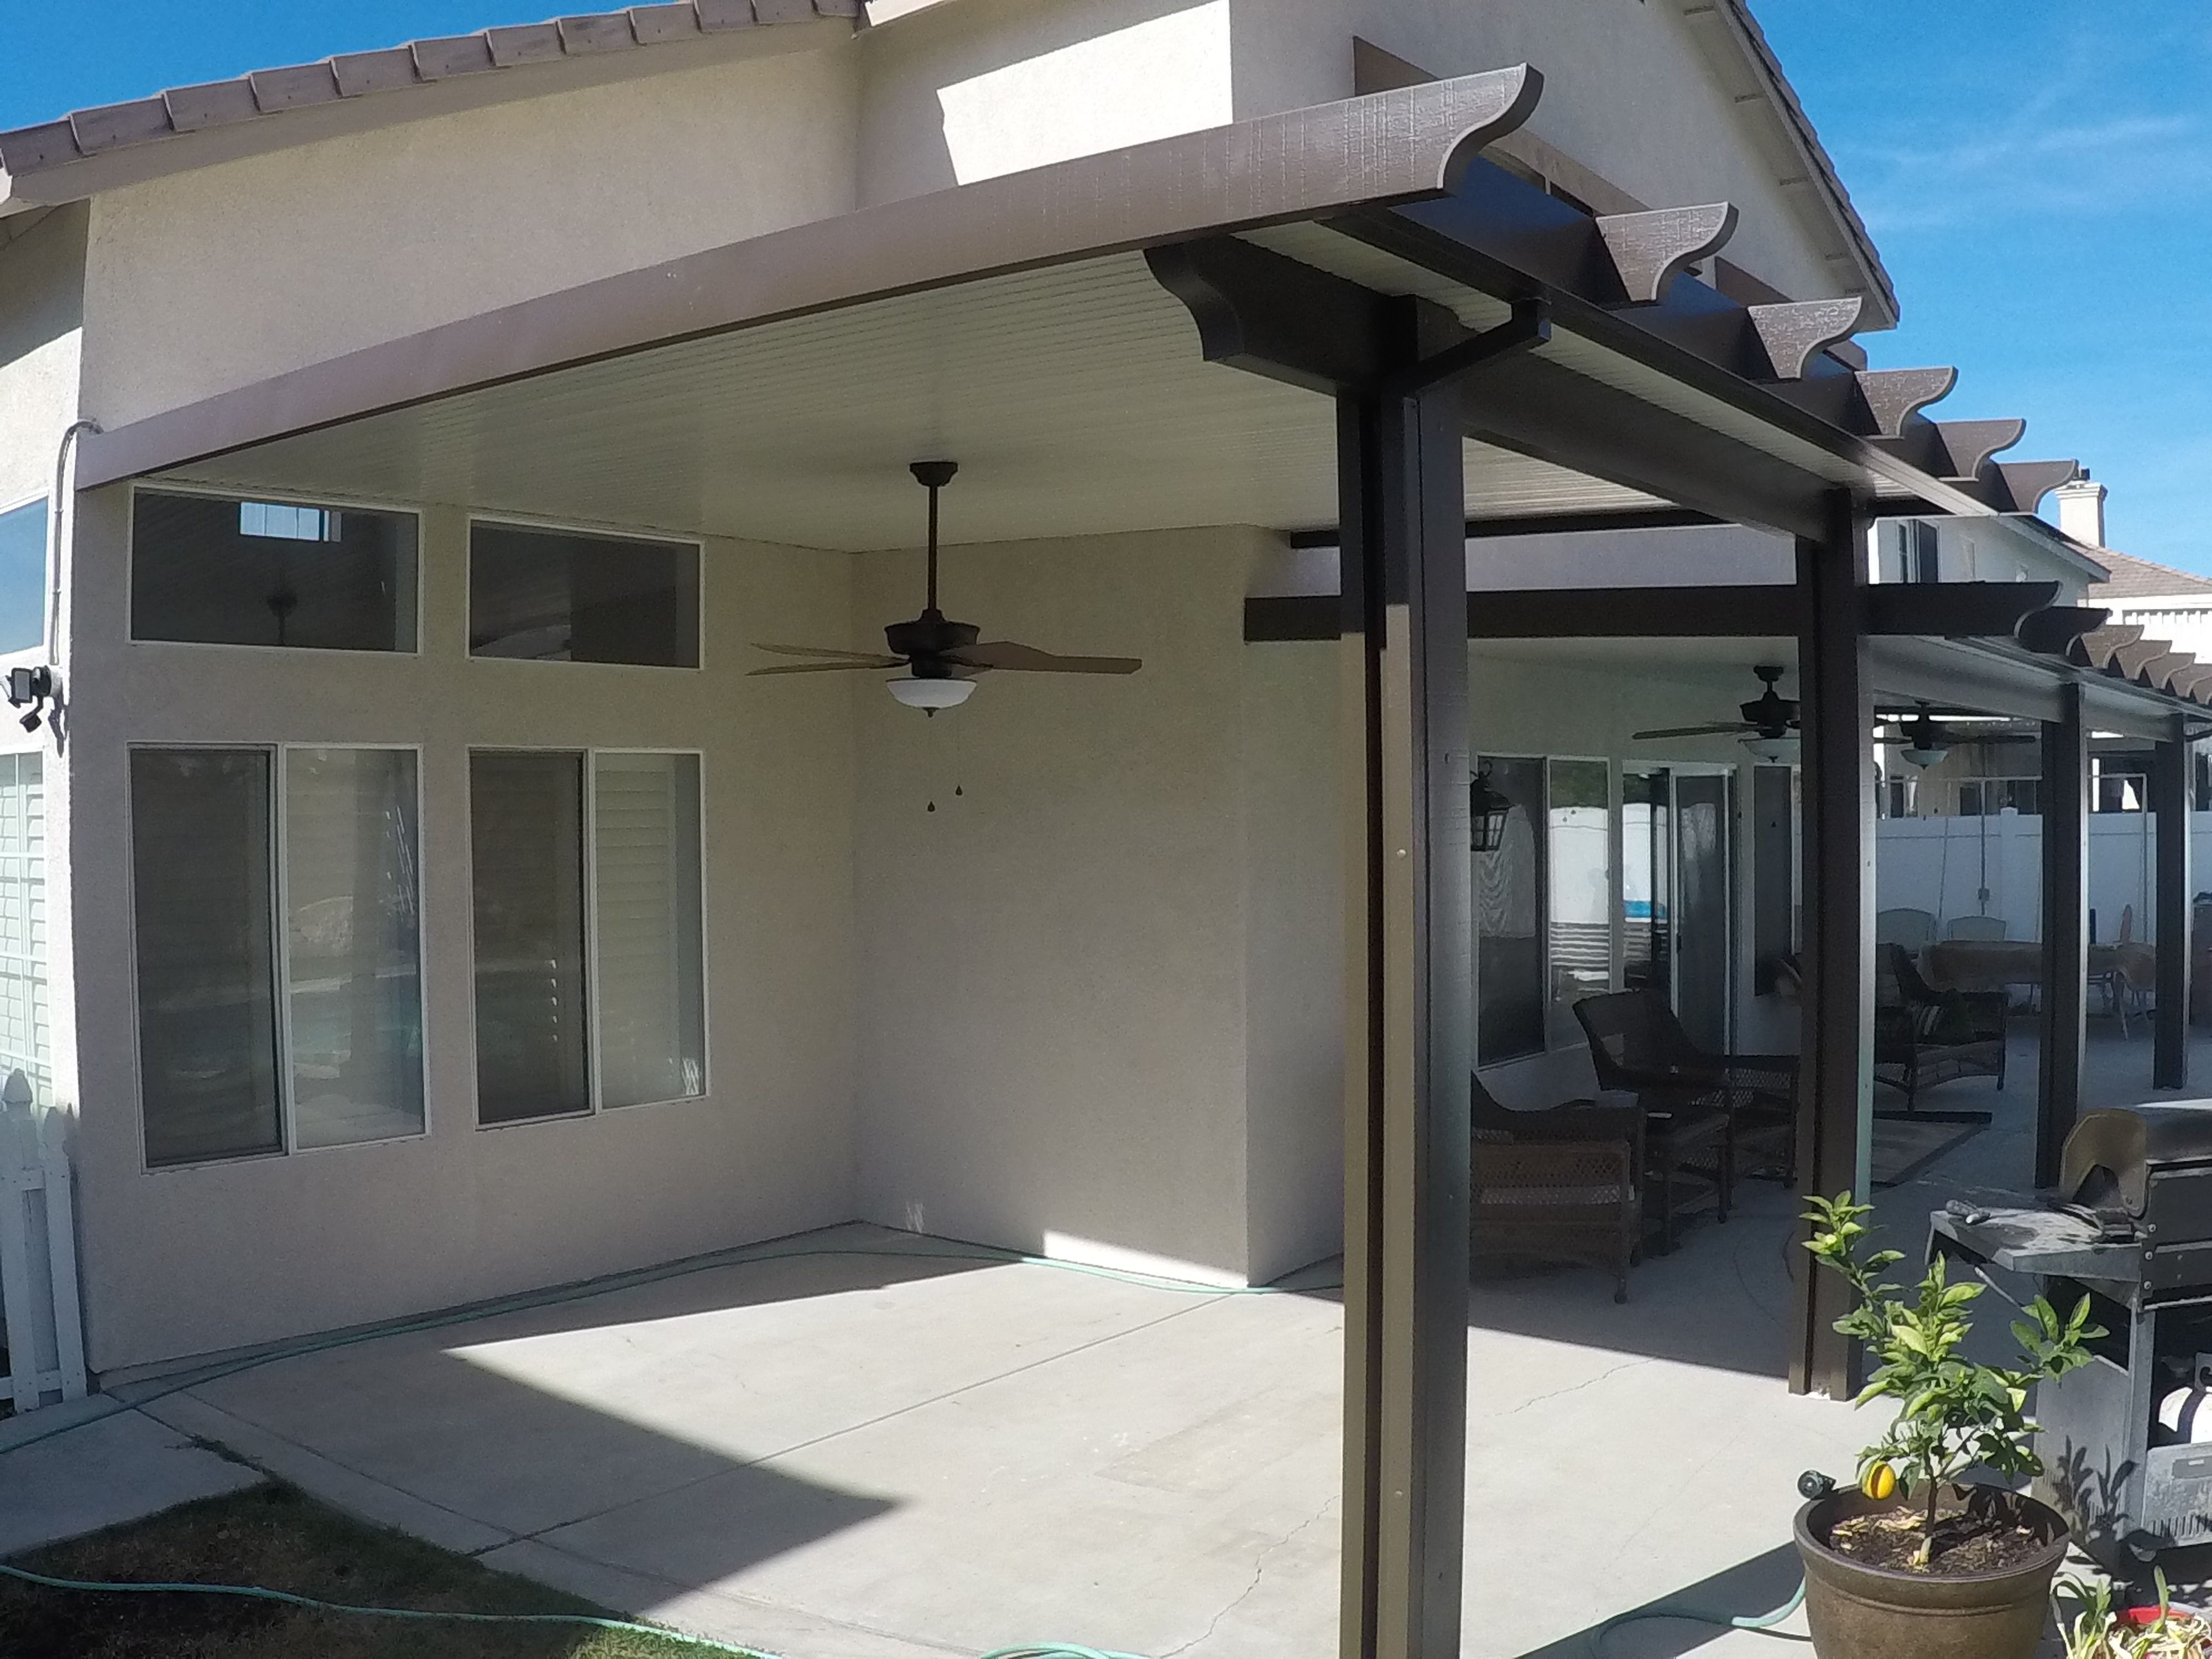 Solid Alumawood Patio Cover In Highland Ca Call 951 735 3379 To Schedule Your Free Consultation Patio Patio Awning Covered Patio